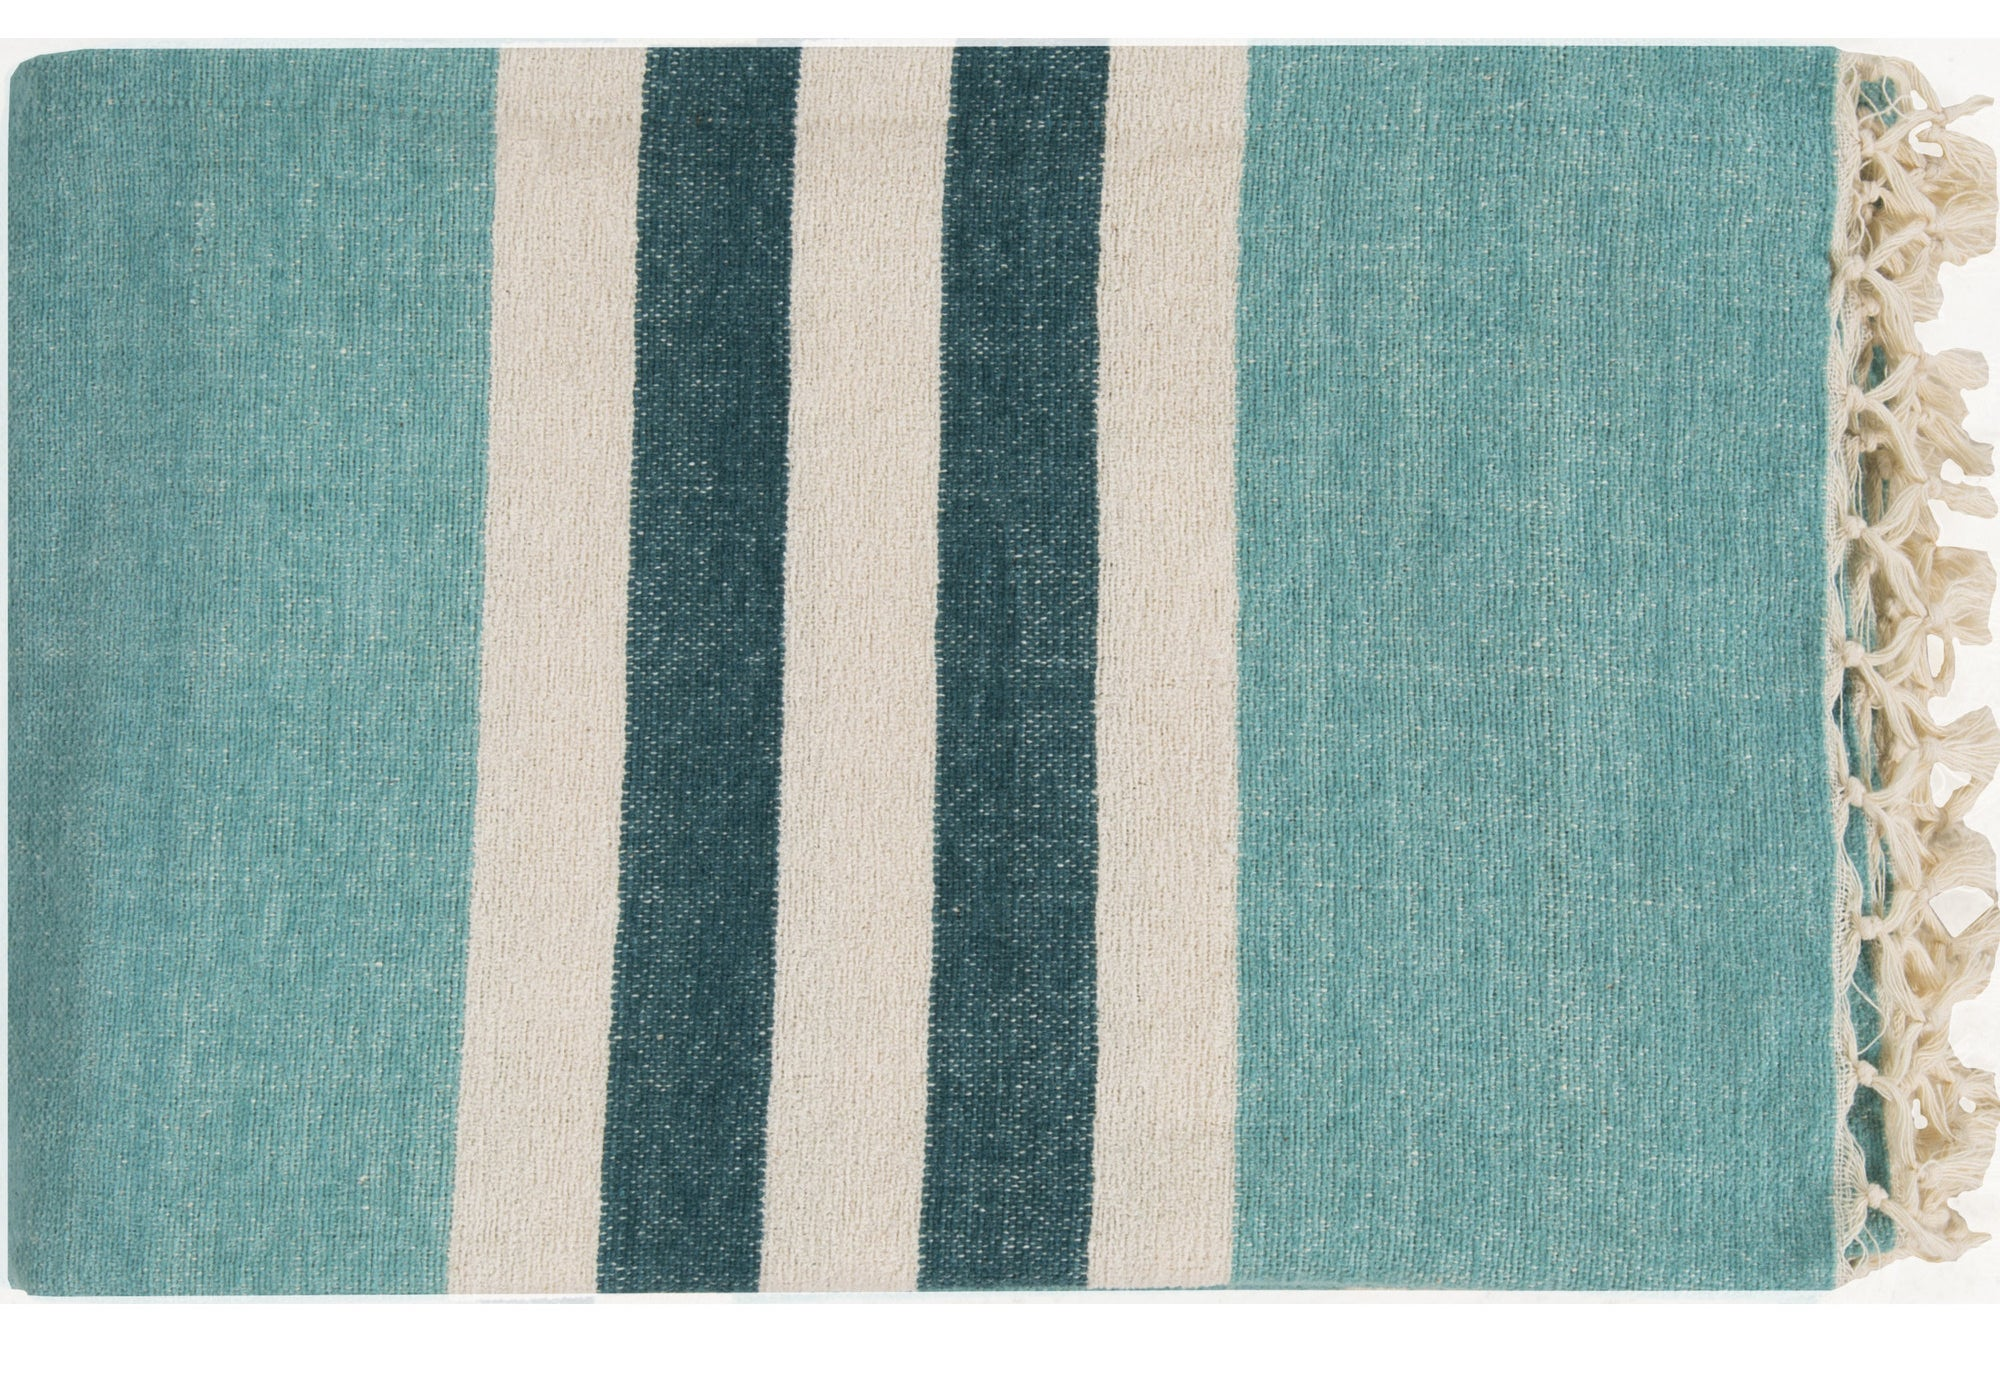 a teal blue throw with white and darker blue stripes in a middle section and tan fringe on the ends